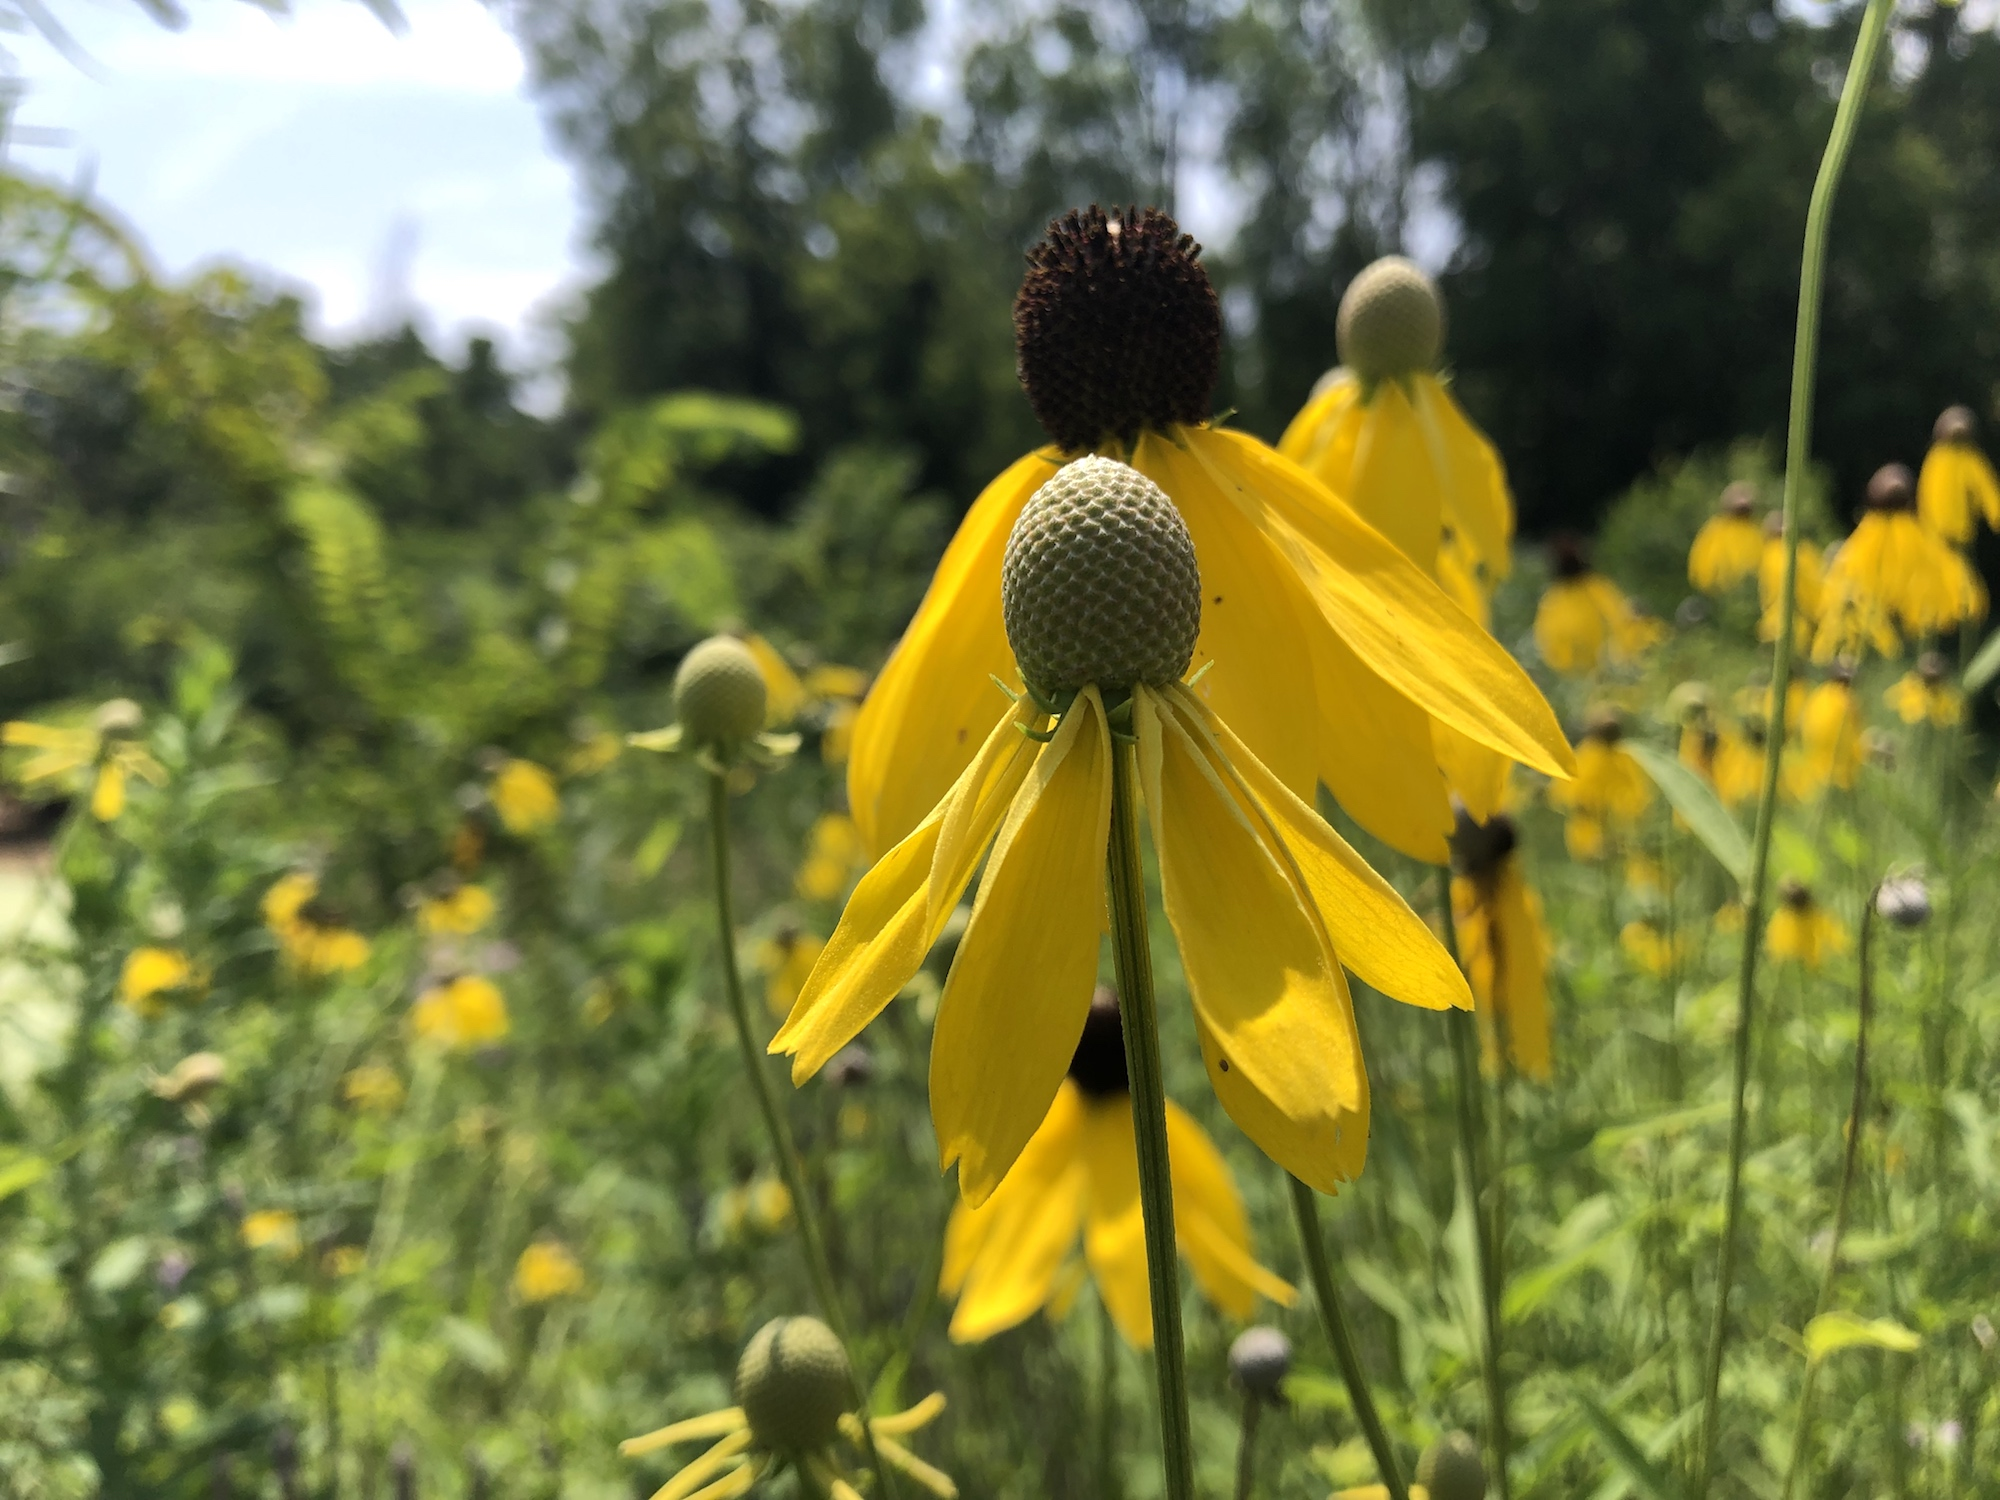 Gray-headed coneflower on shore of Marion Dunn Pond  in Madison, Wisconsin on July 25, 2019.